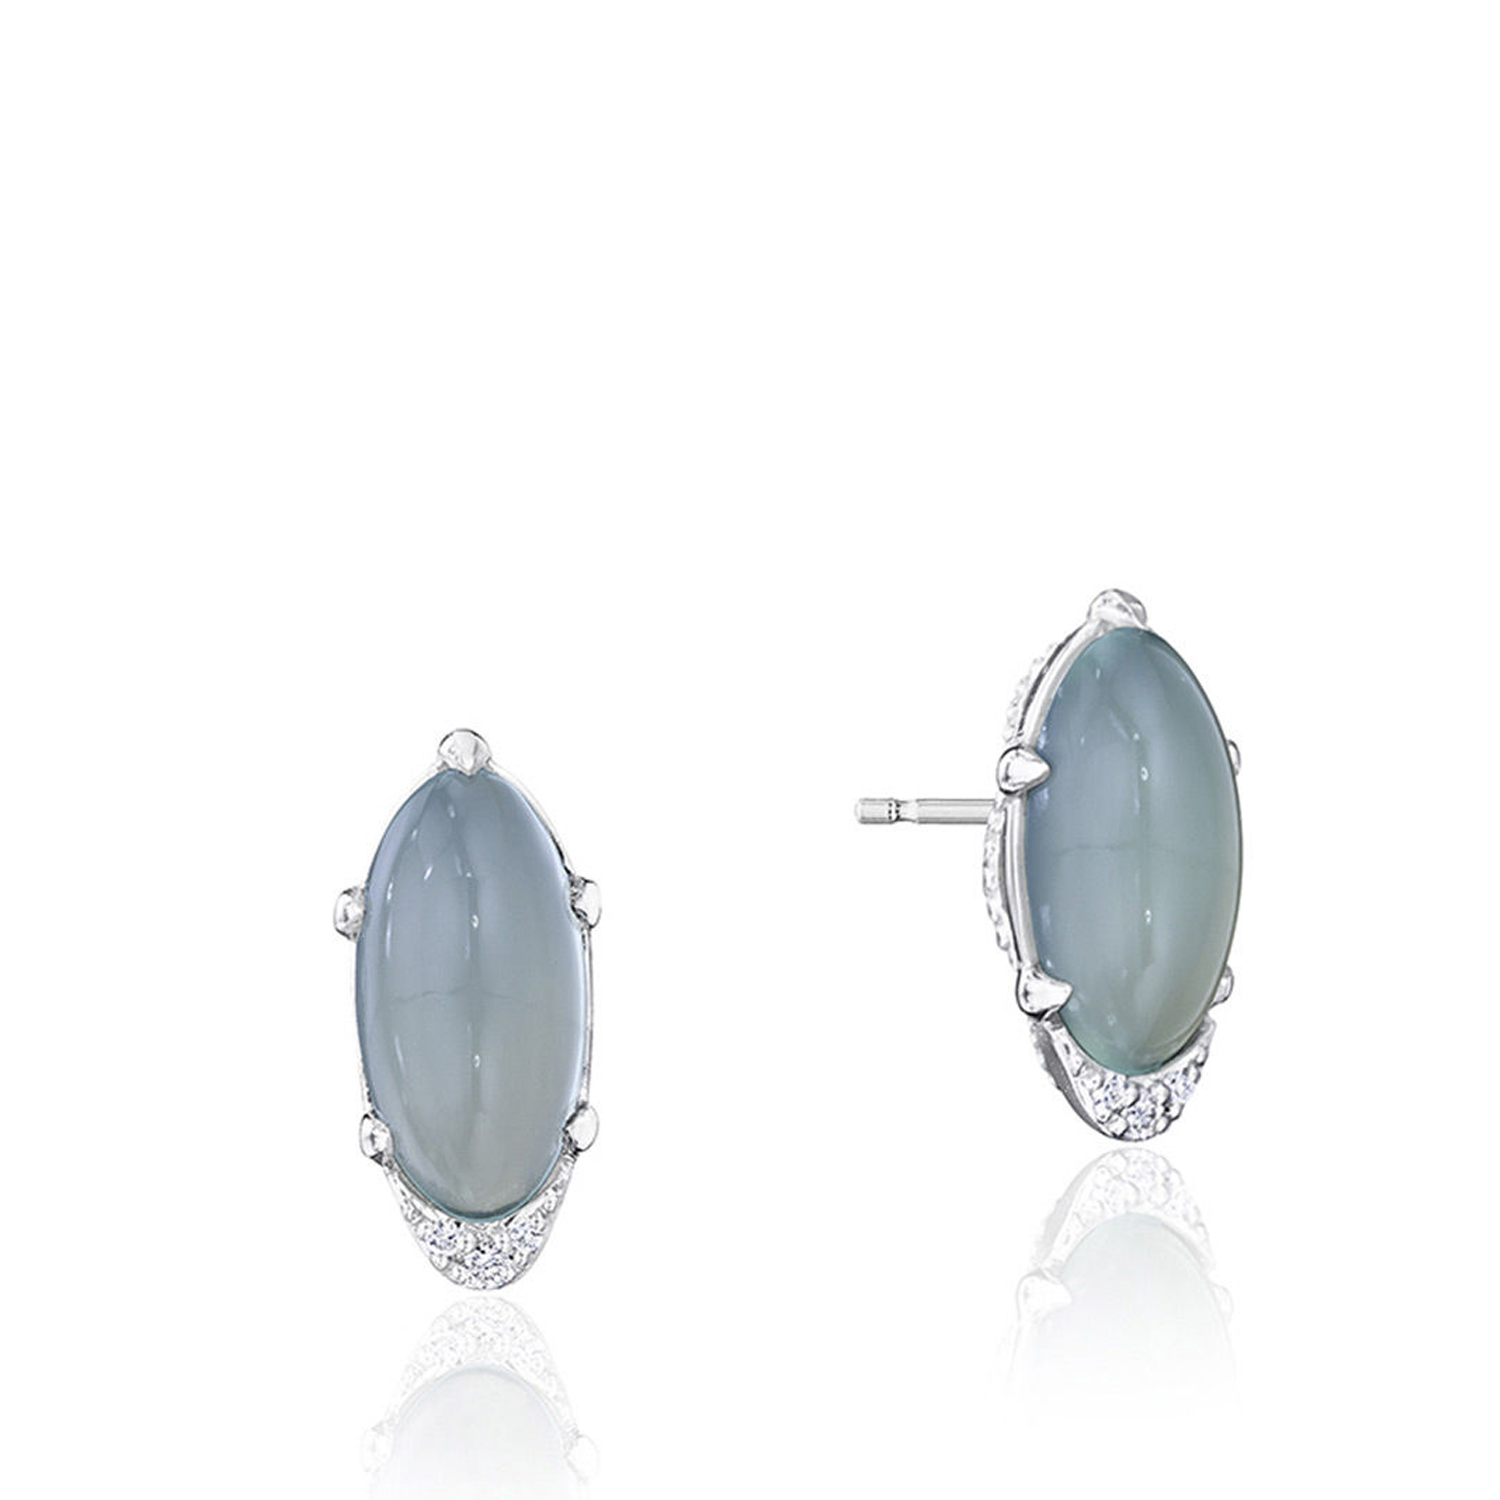 Tacori SE24838 Oval-Shaped Gem Earrings with Green Chalcedony